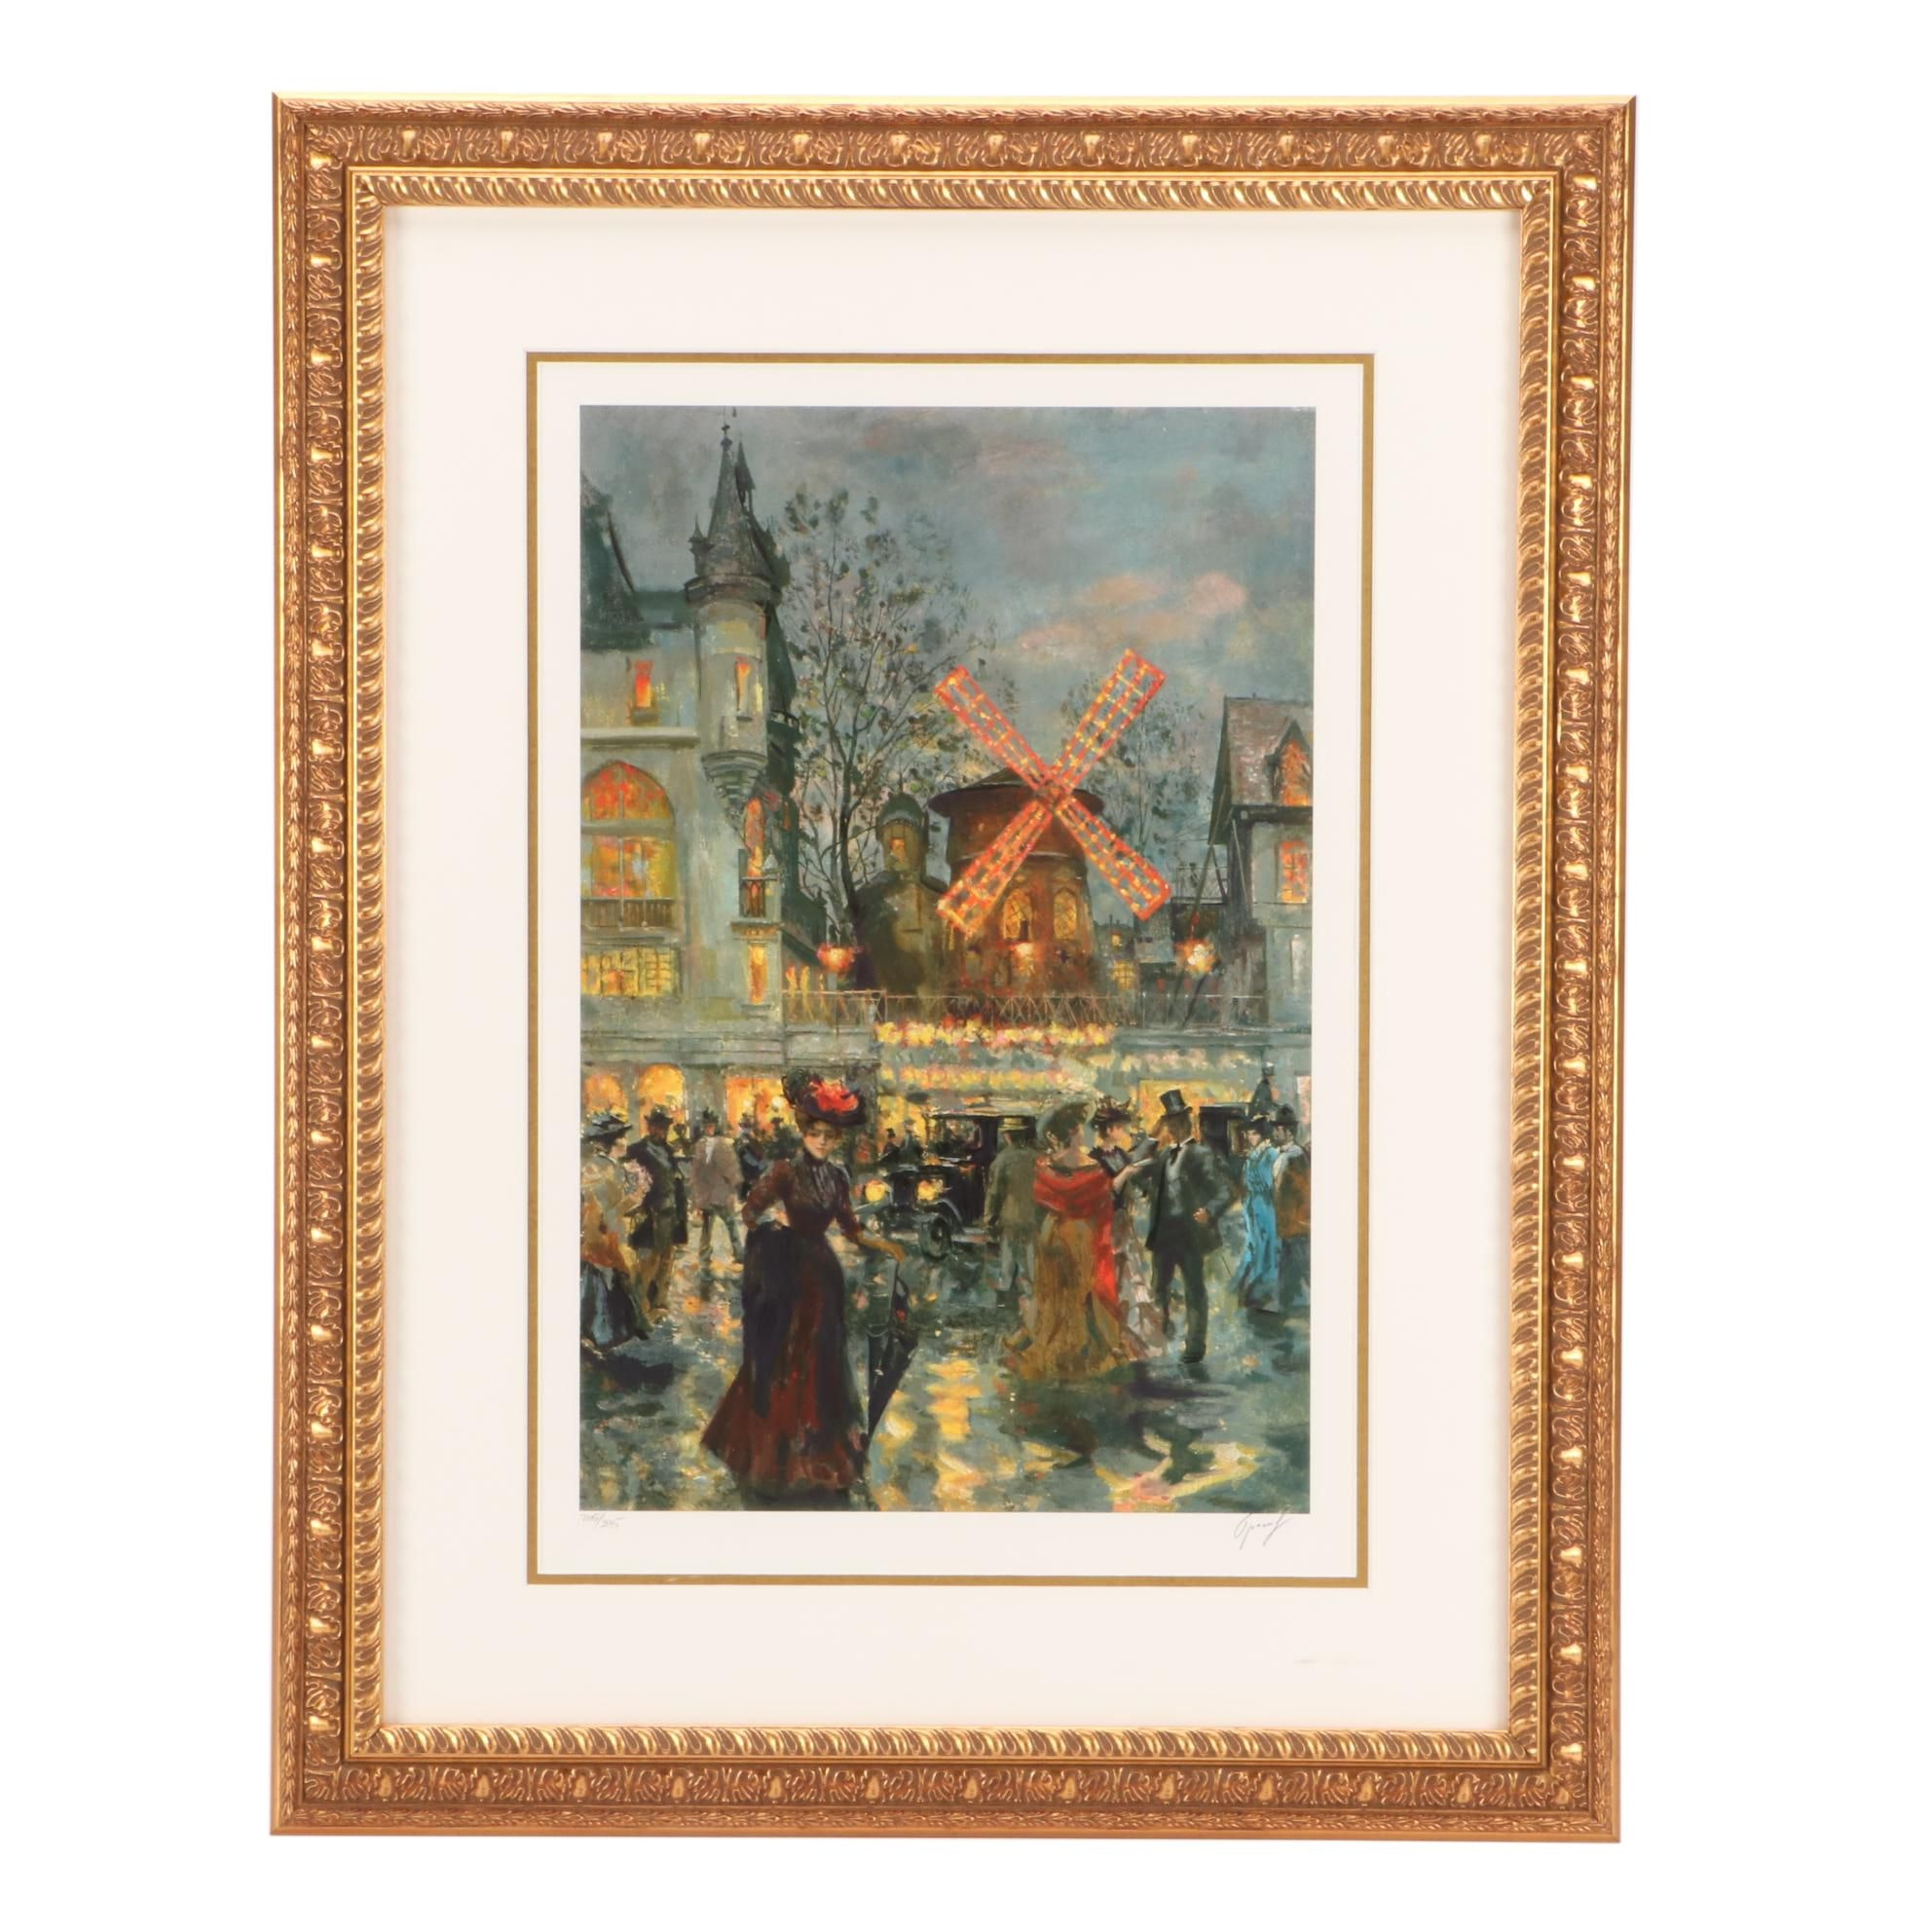 Limited Edition Offset Lithograph of Festive Street Scene